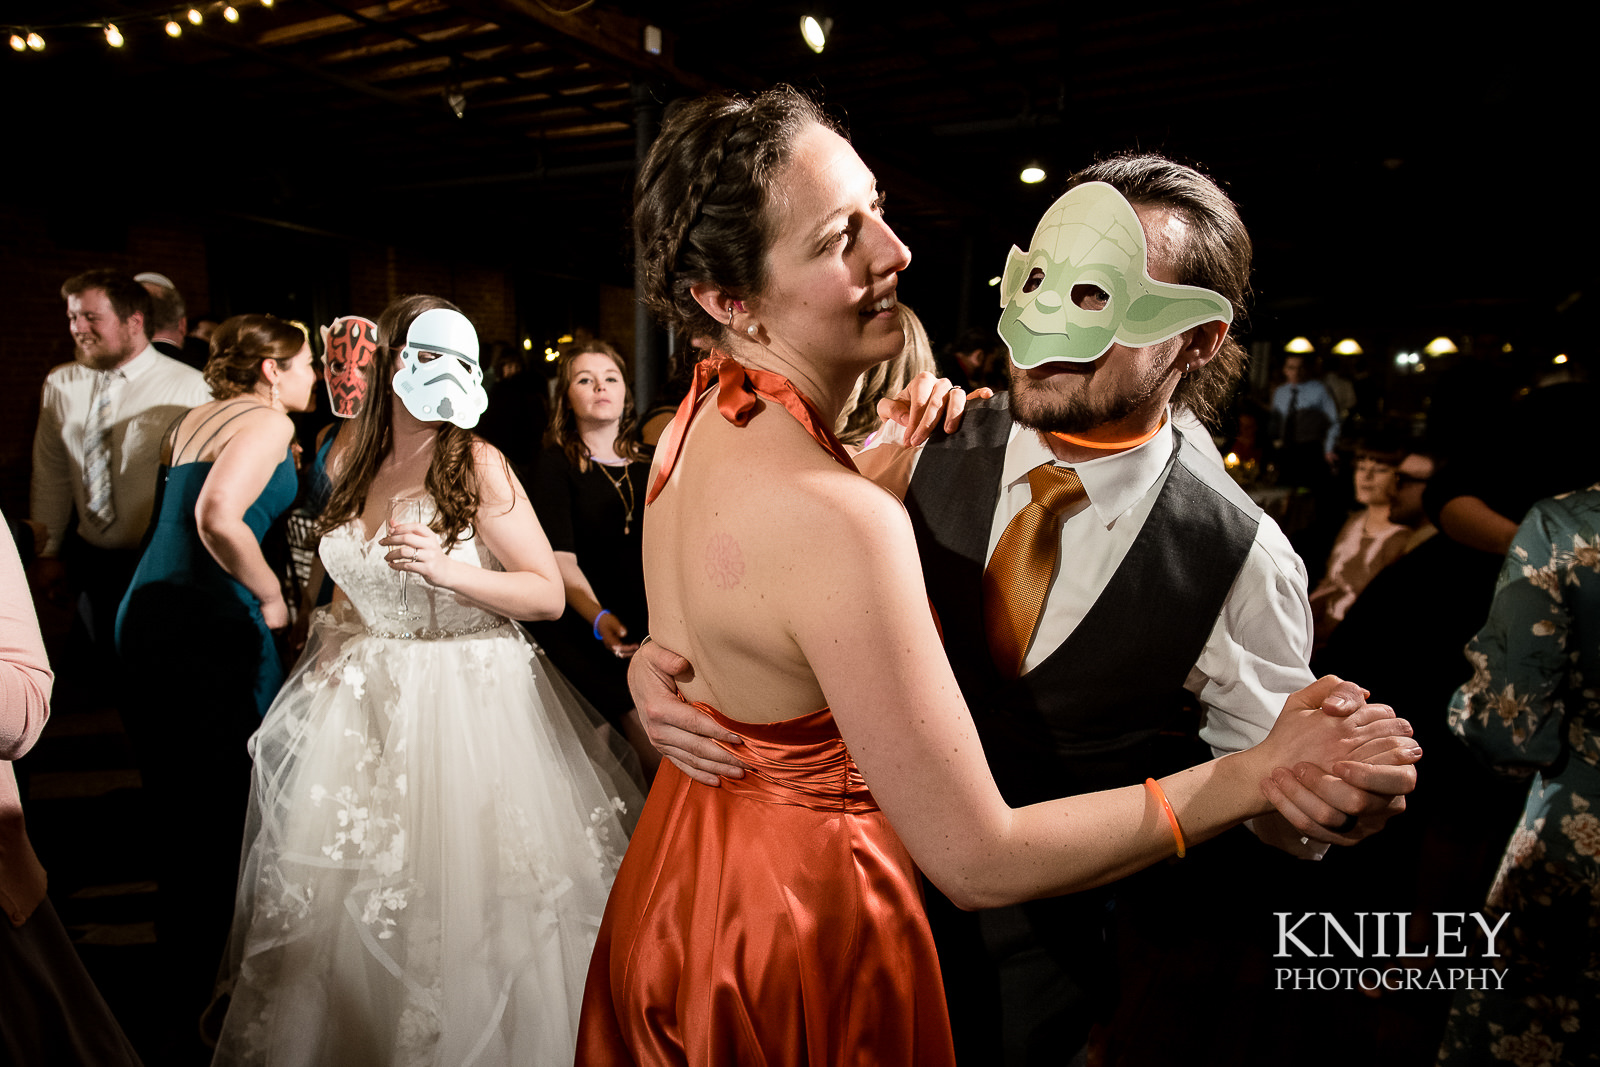 57-Pearl-St-Grill-Wedding-Reception-Buffalo-NY-Kniley-Photography-Star-Wars-May-the-4th.jpg